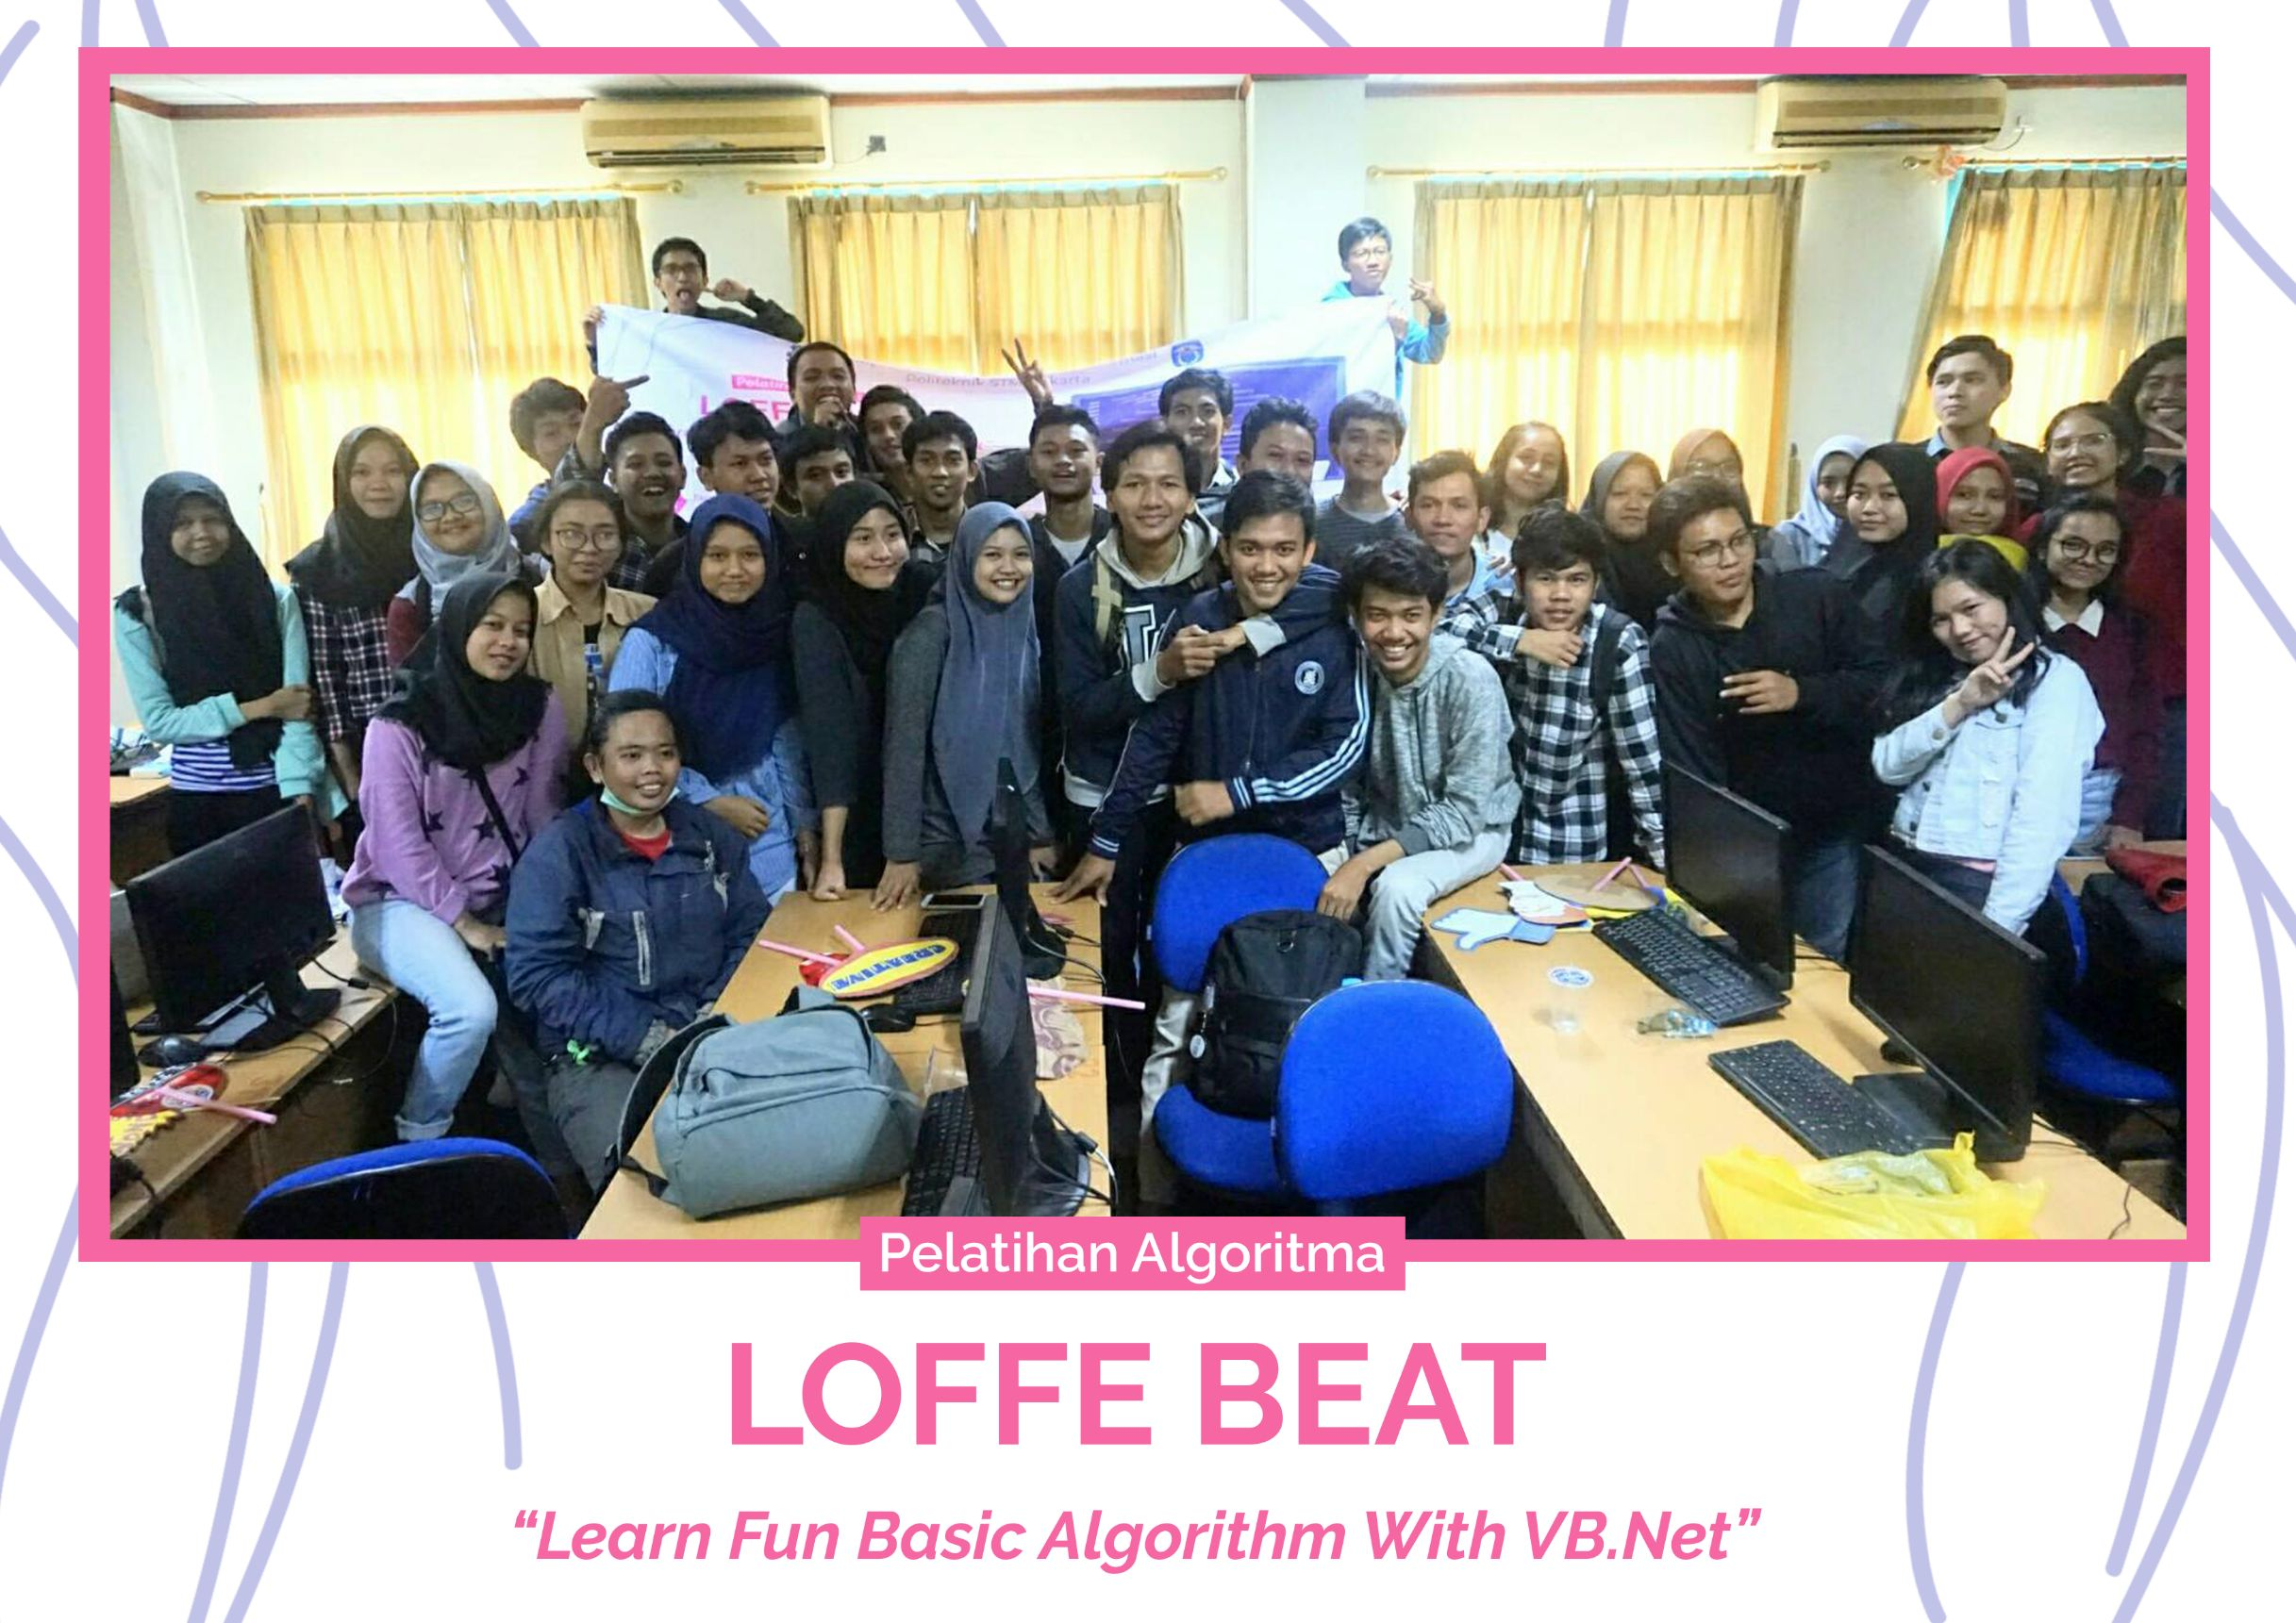 Review Kegiatan PELATIHAN LOFFE BEAT (LEARN FUN BASIC ALGORITHM WITH VB.NET) WITH HIMASIS